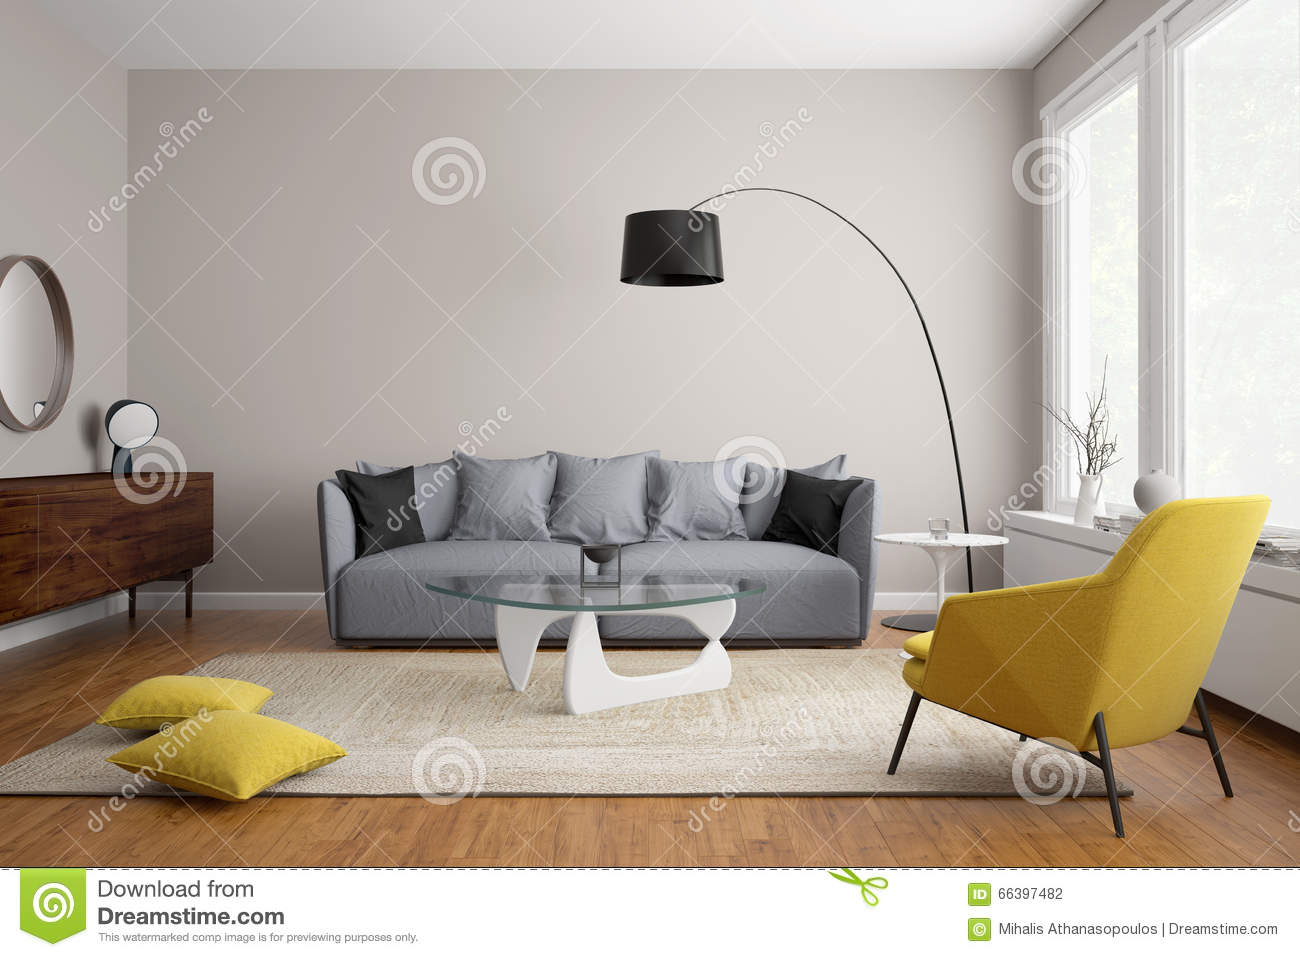 living rooms with grey sofas. Royalty Free Illustration  Download Modern Scandinavian Living Room With Grey Sofa Stock